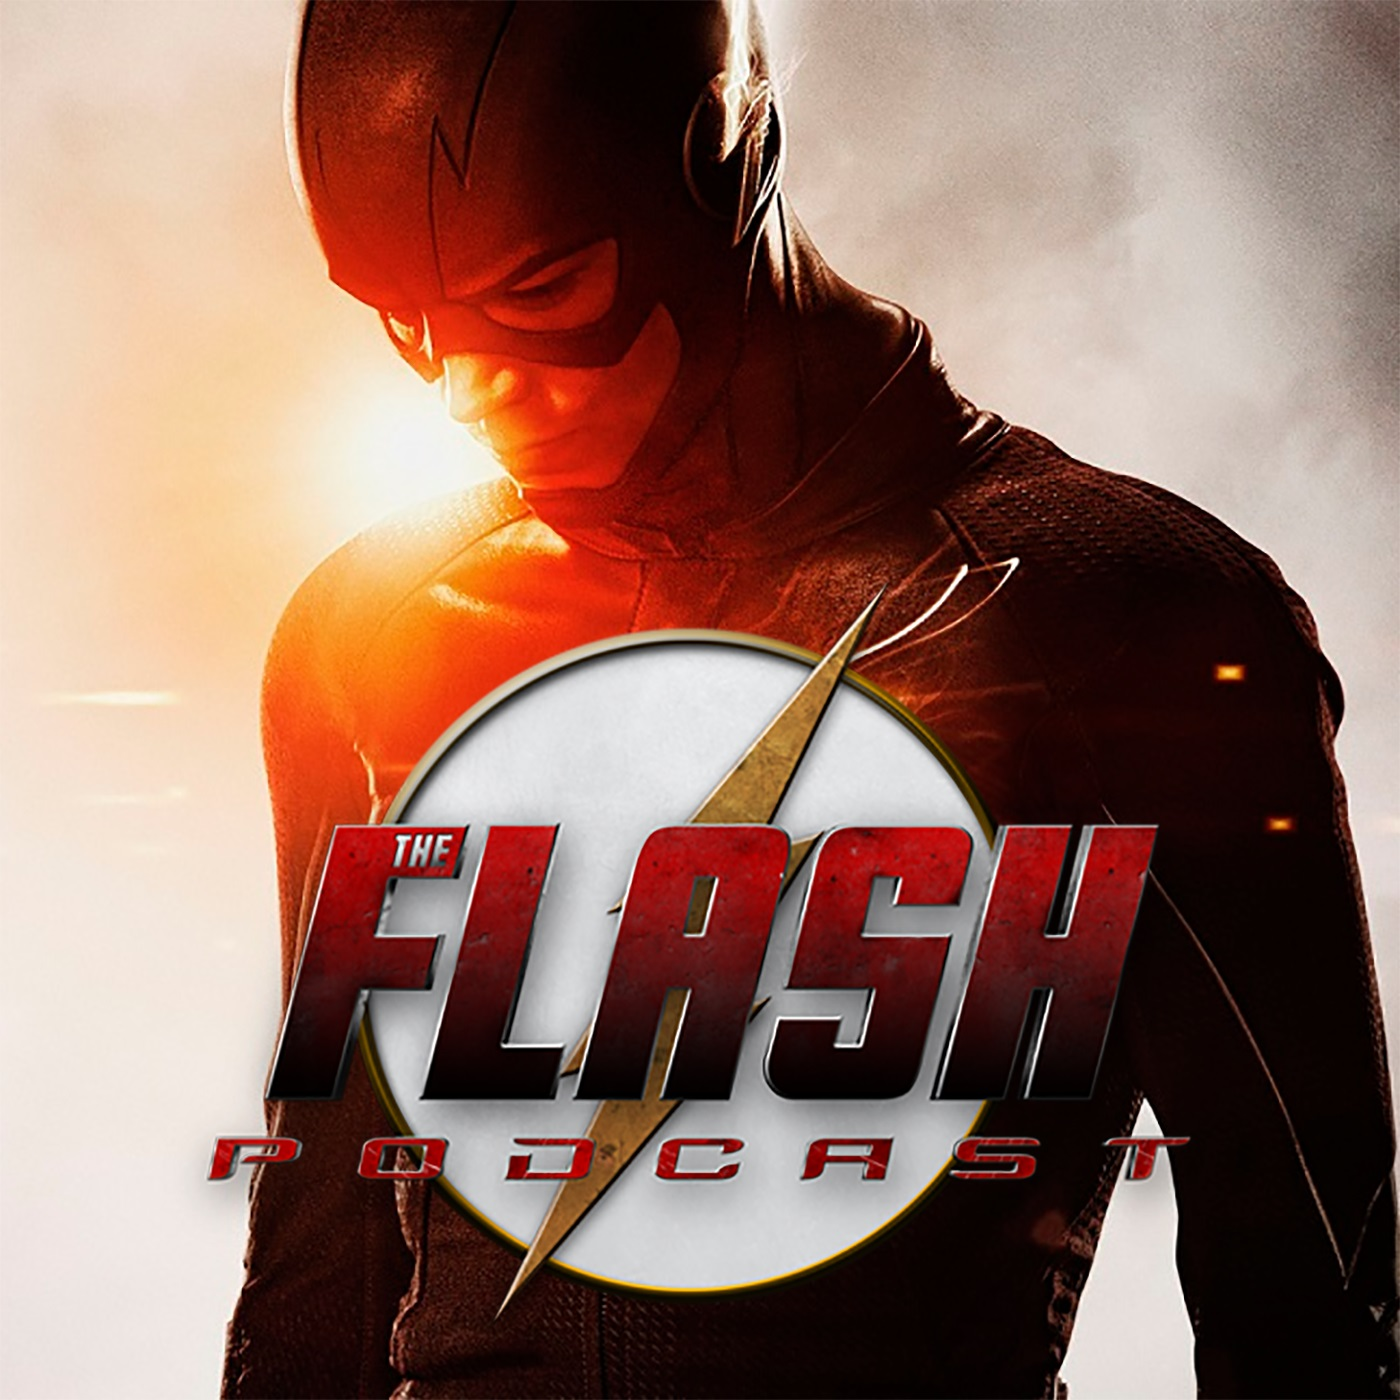 The Flash Podcast Season 2 – Episode 10: Potential Energy